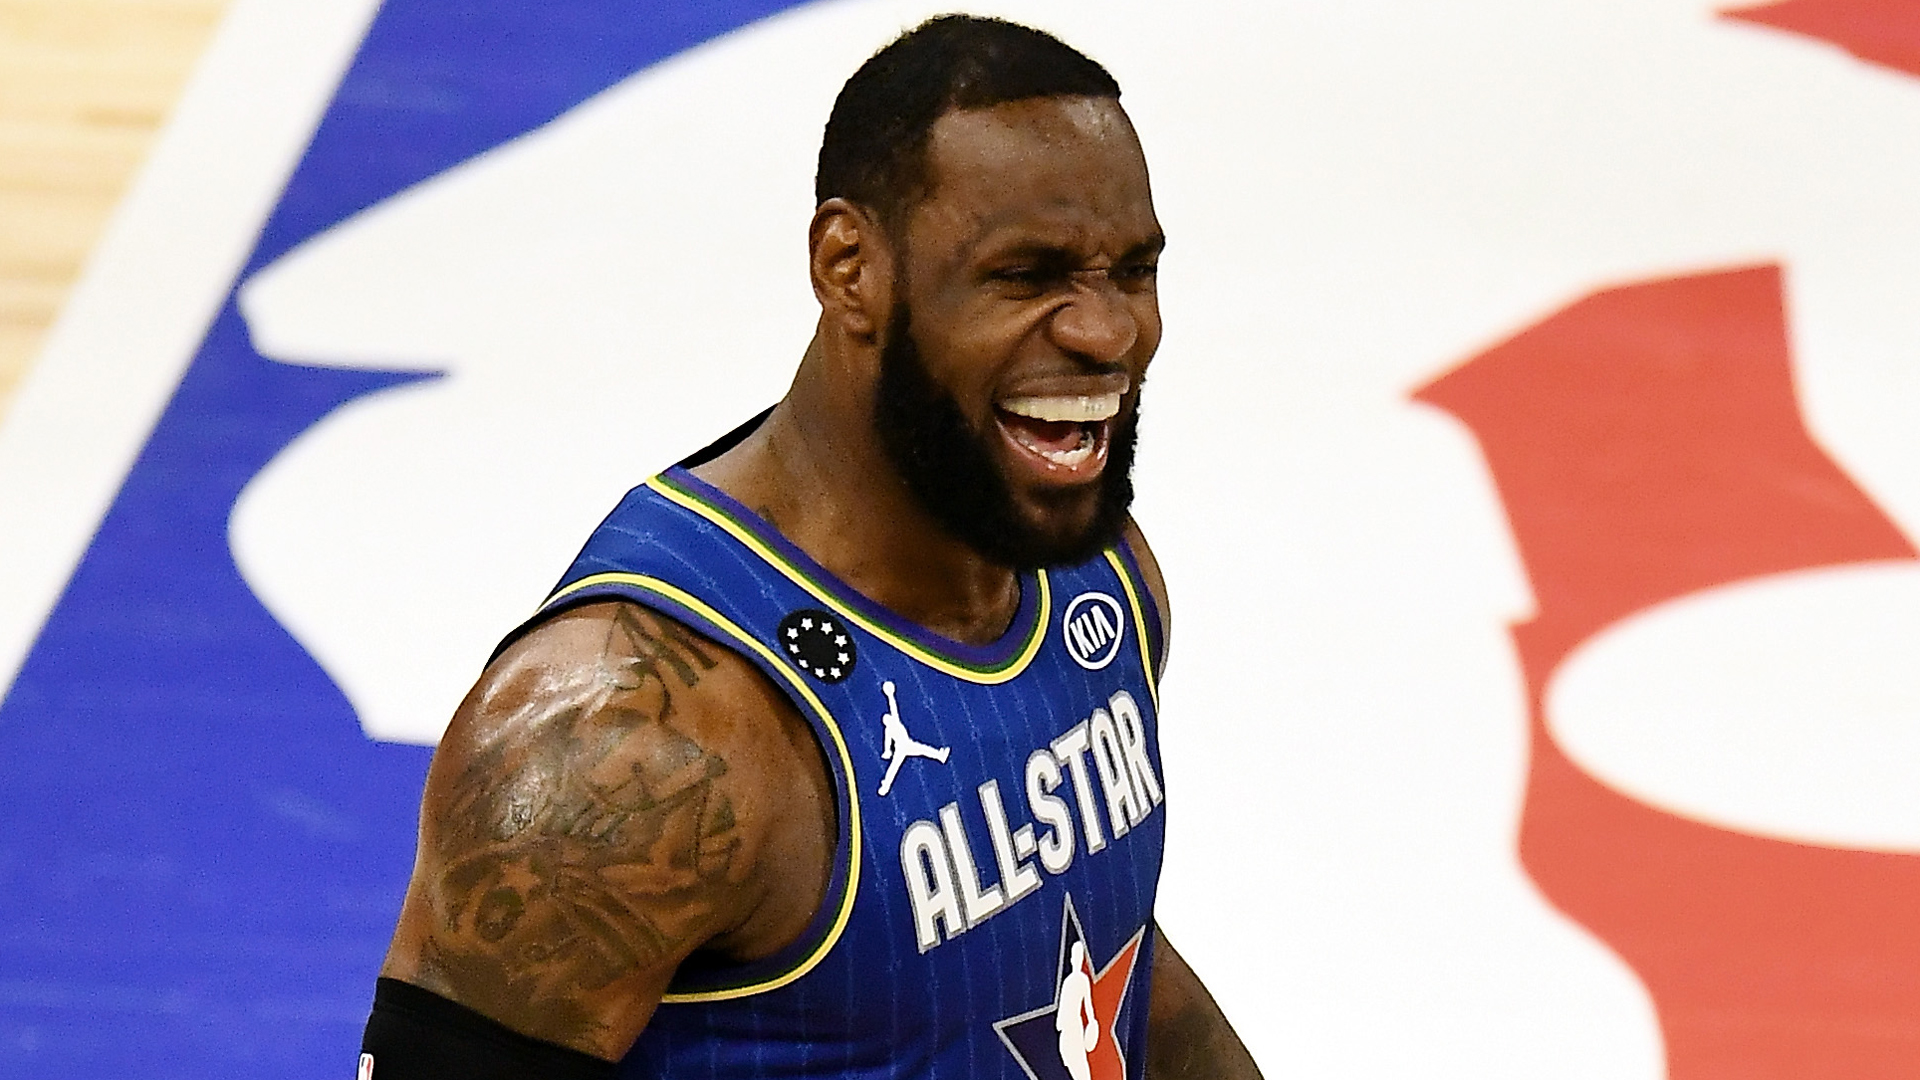 LeBron felt Kobe Bryant's presence during All-Star Game